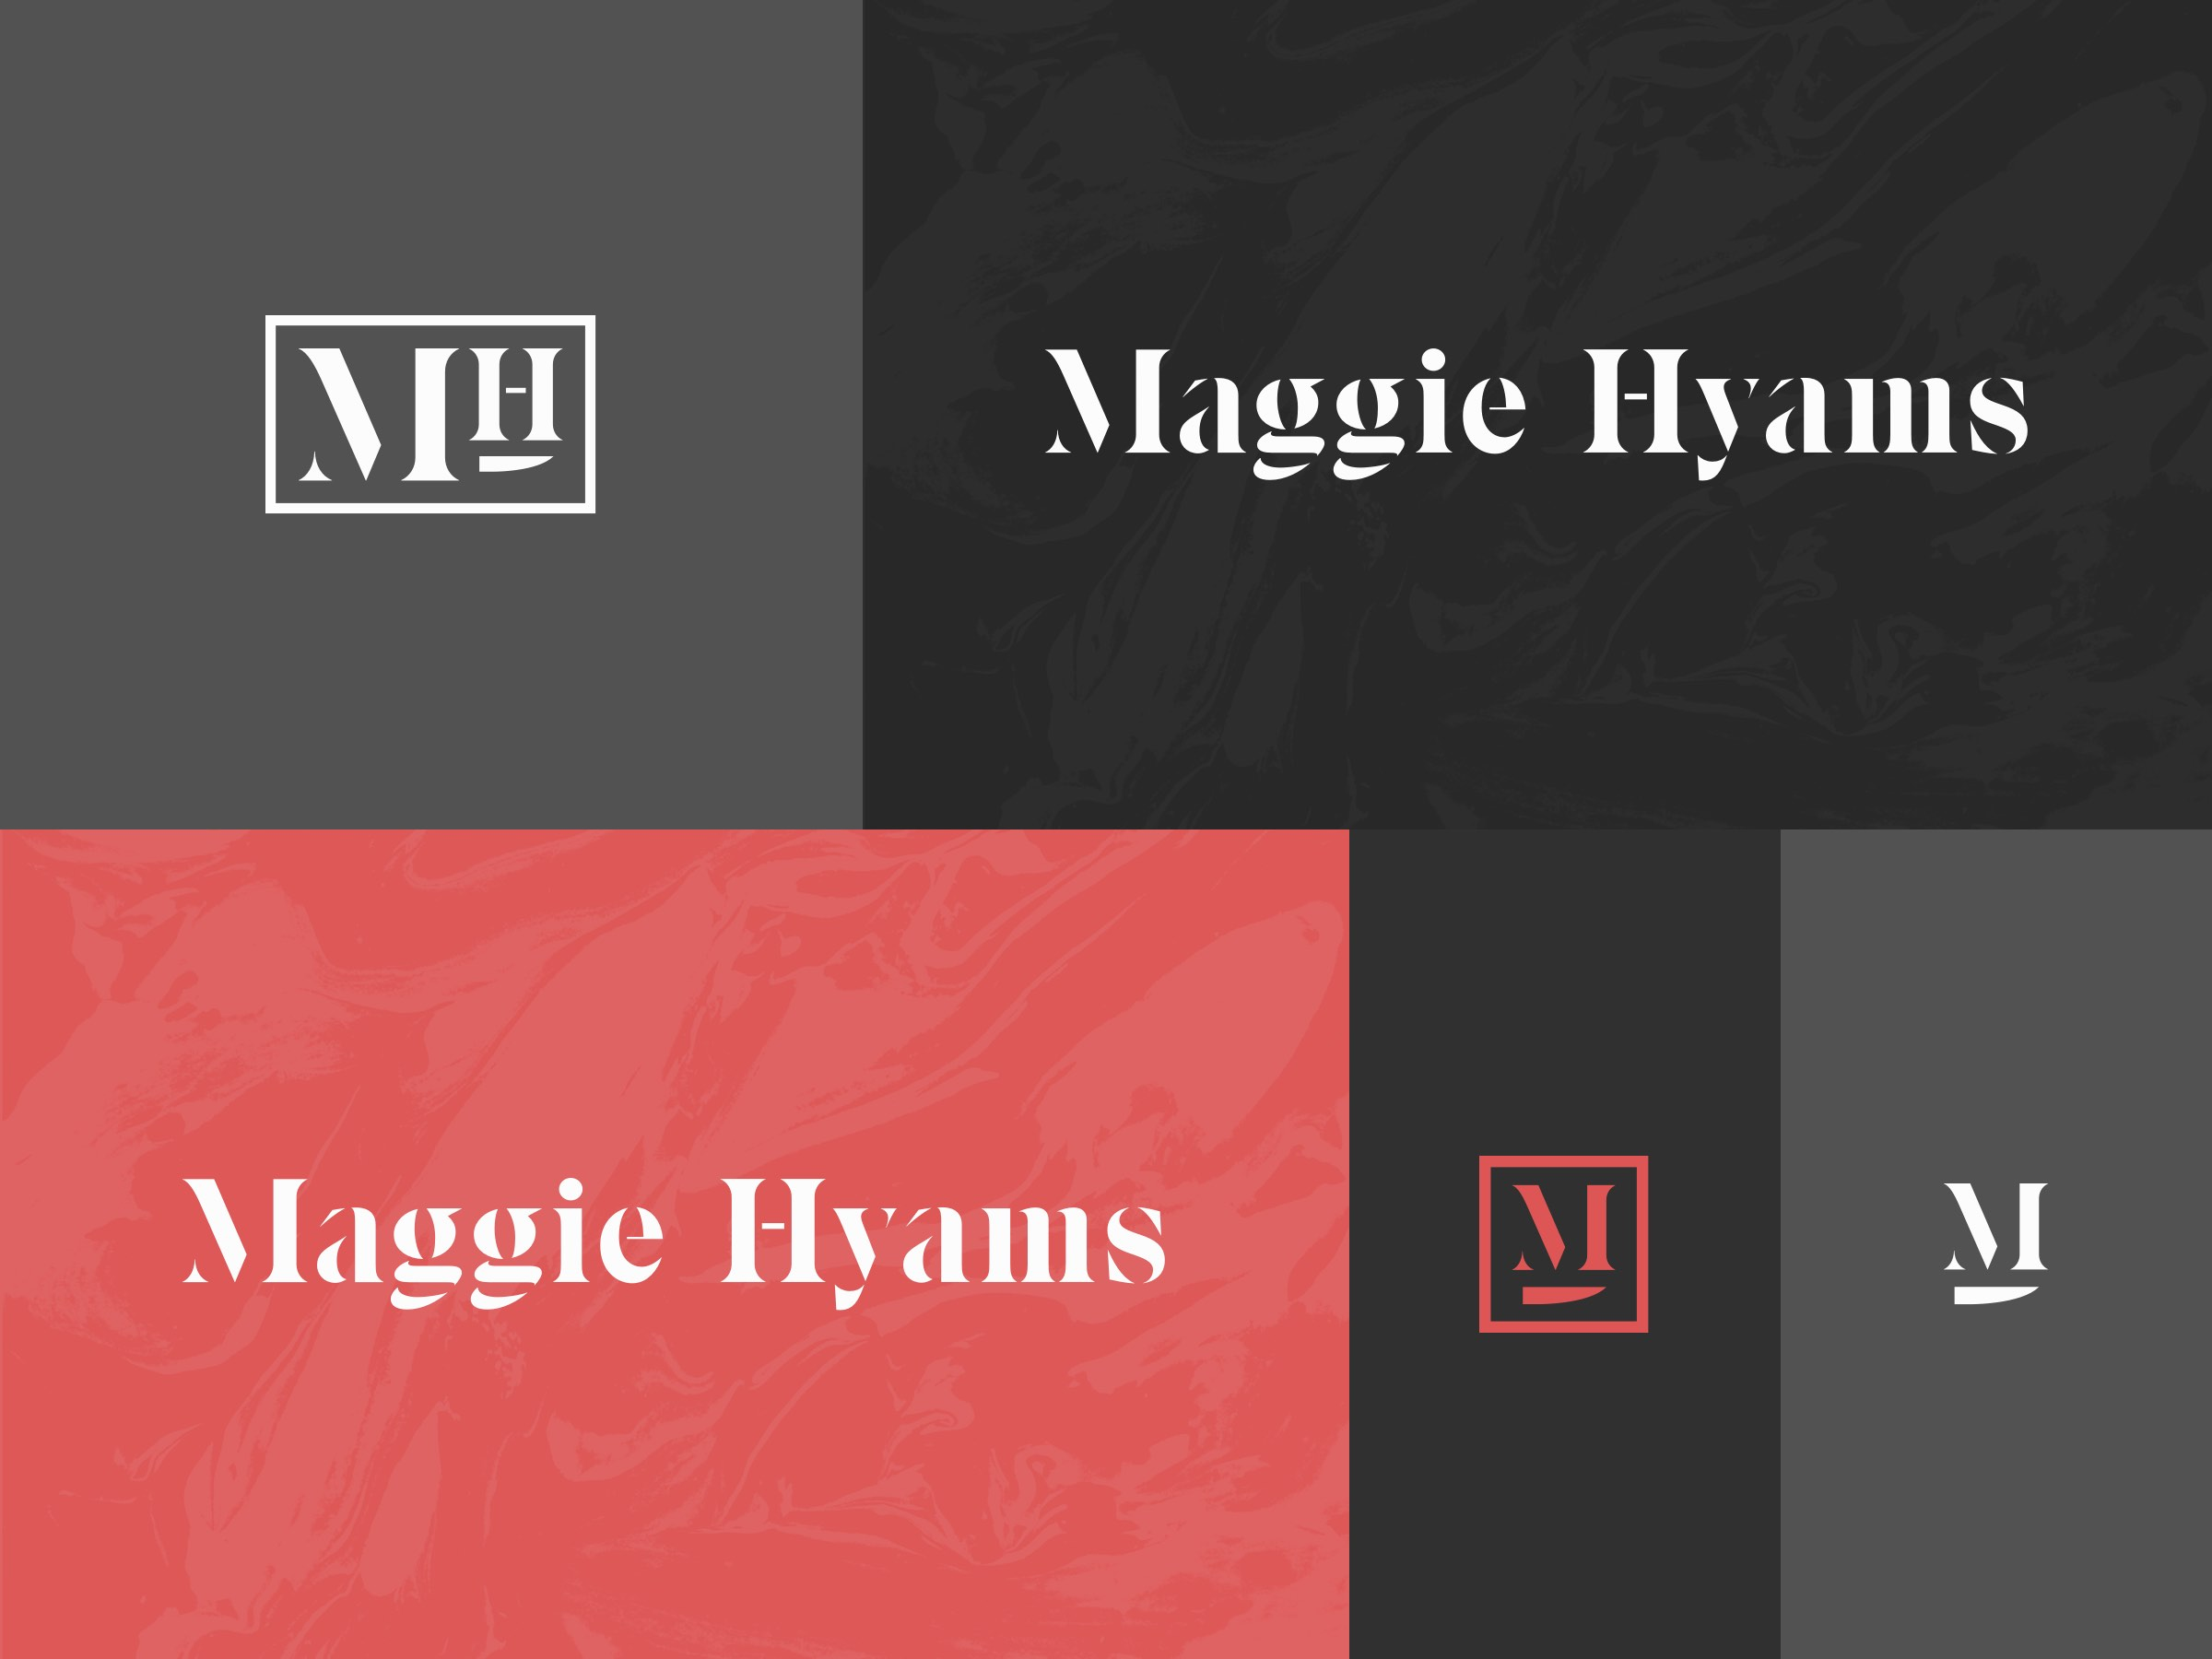 Maggie Hyams color and texture options